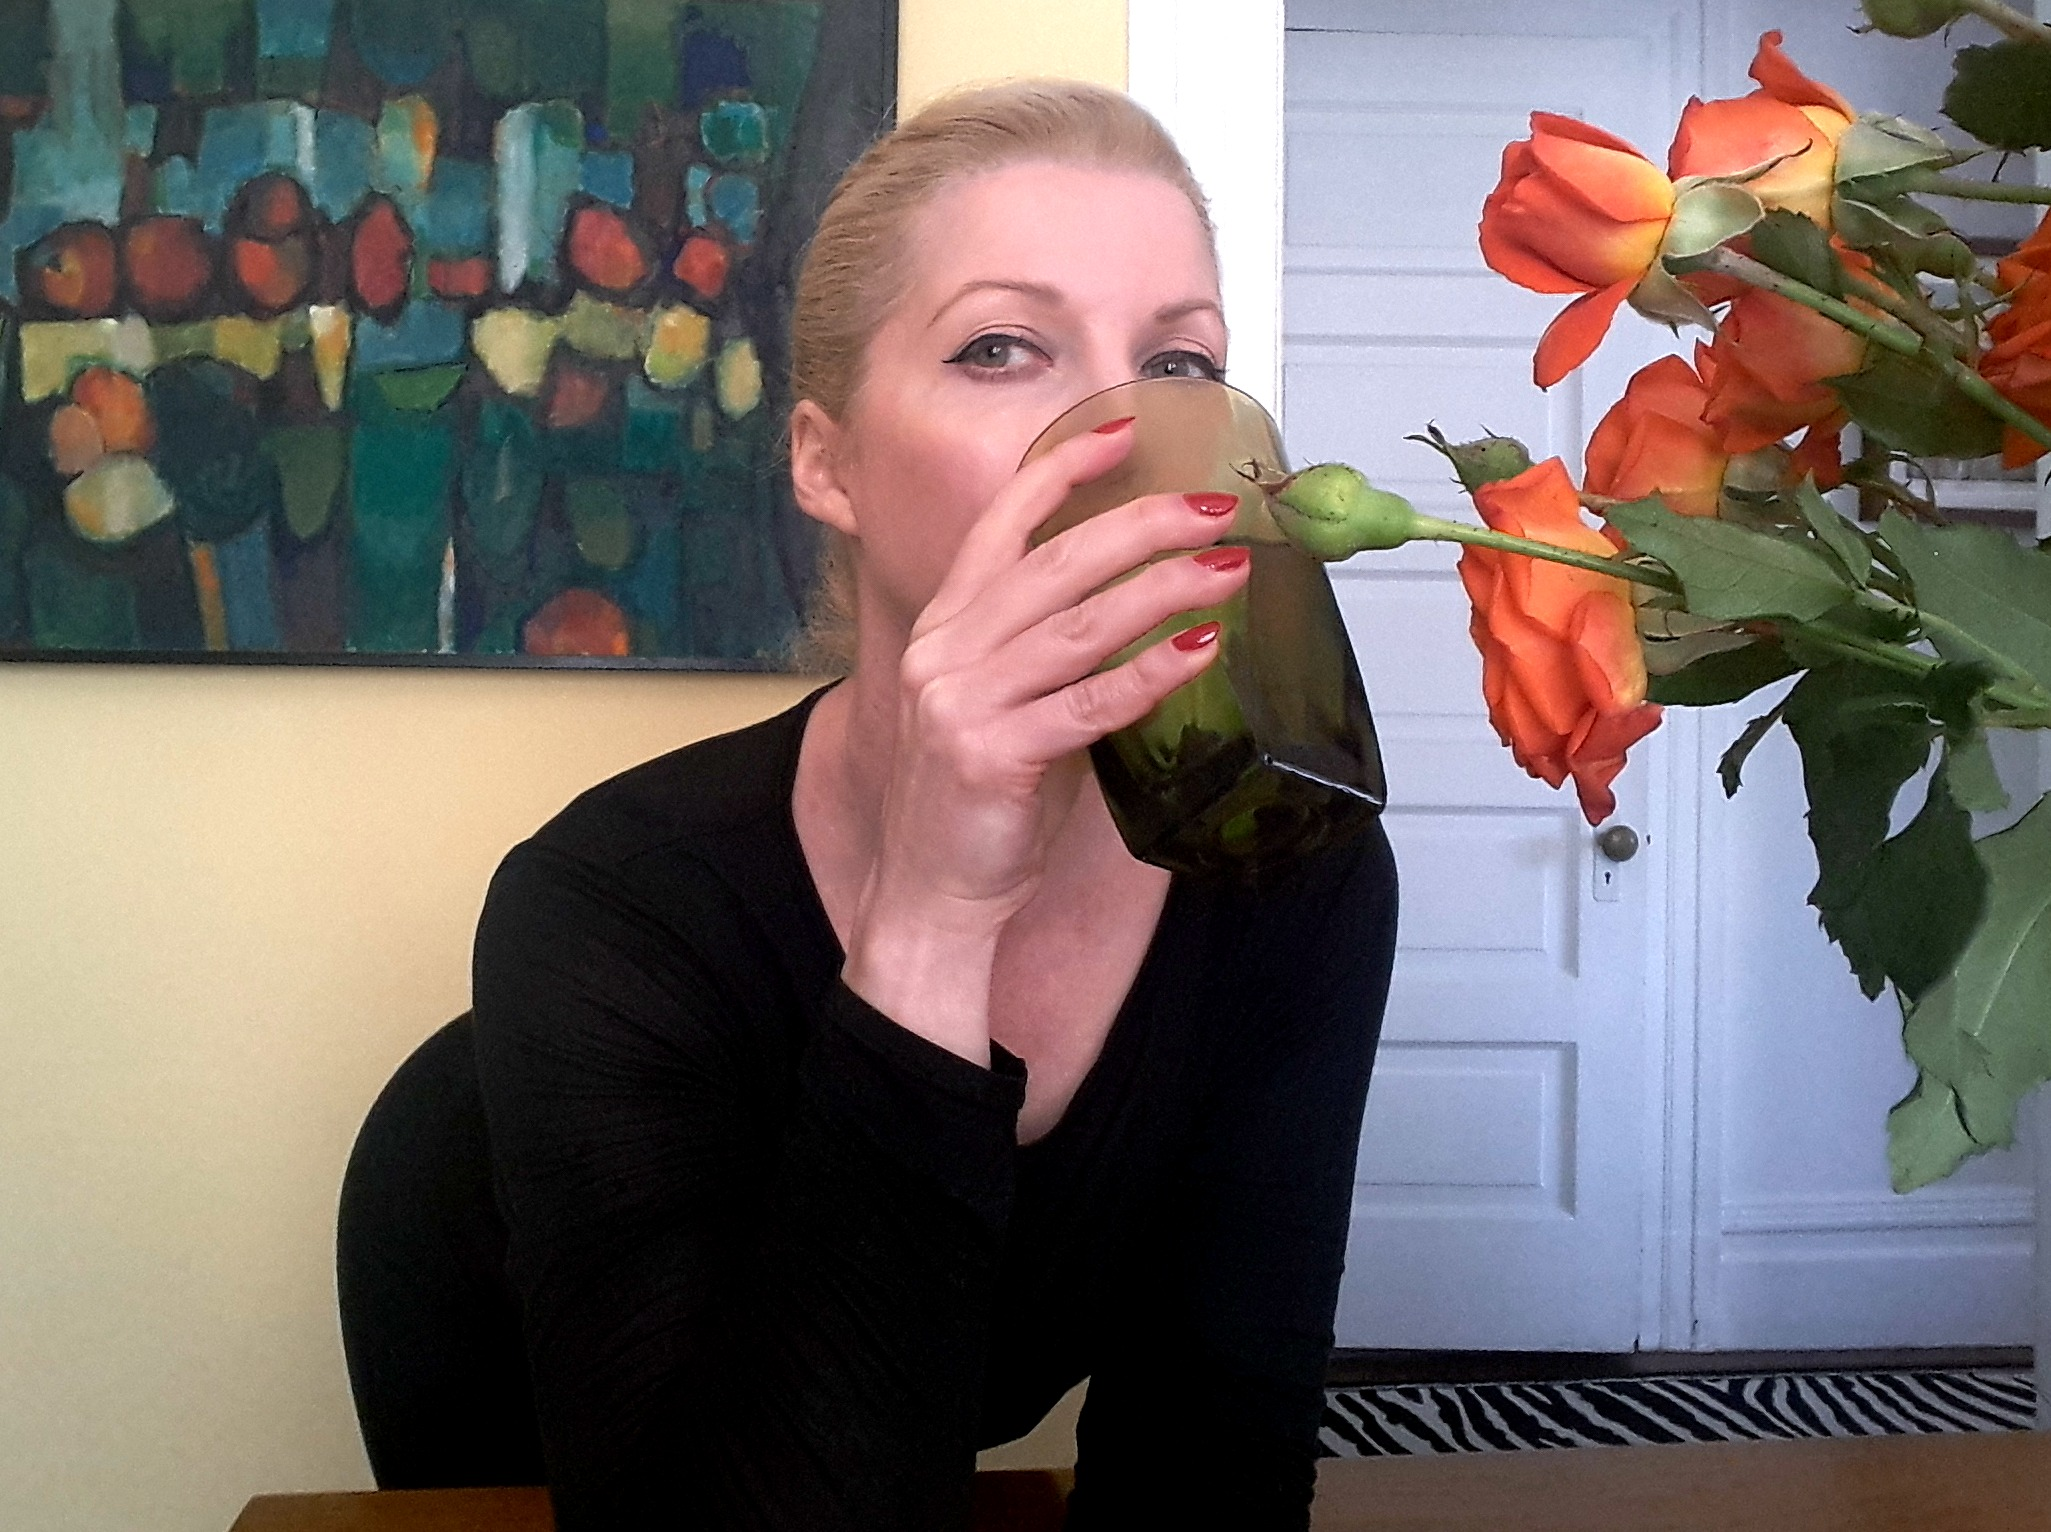 Marci+Bowman-drinking-water-orange-roses.jpg